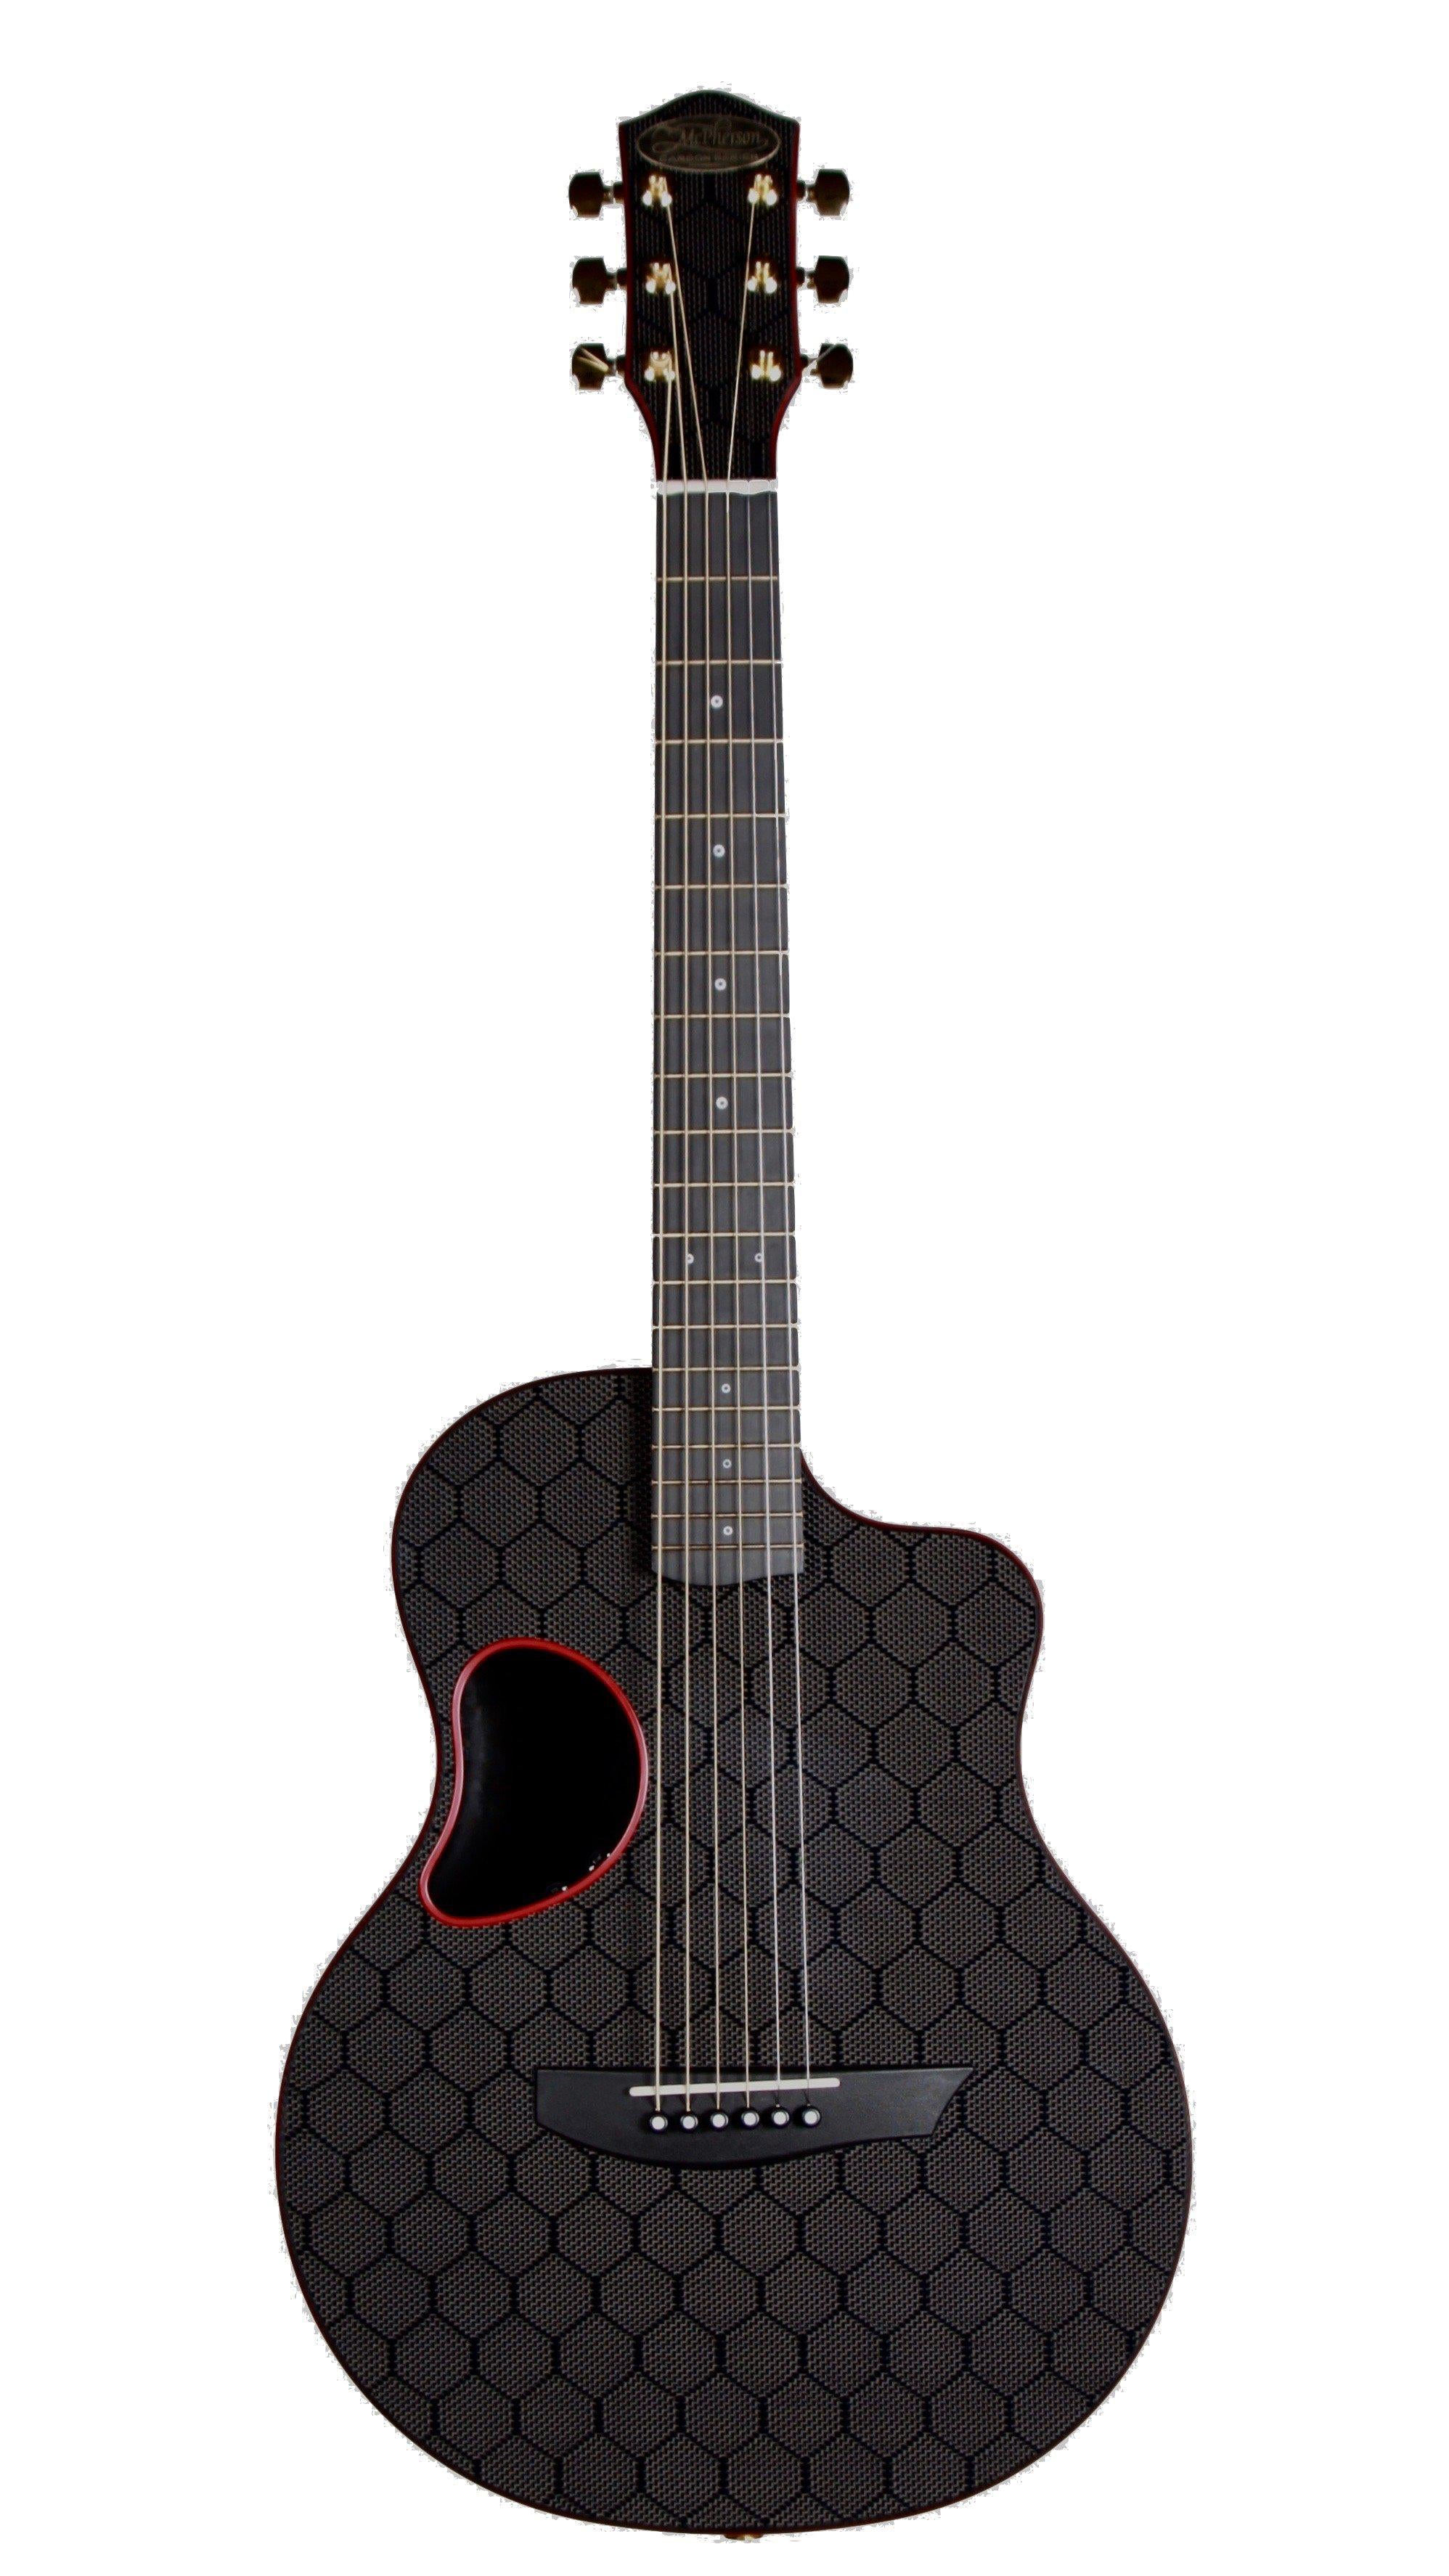 McPherson Touring Carbon Fiber Red Honeycomb with Gold Hardware Red #10649 - McPherson Guitars - Heartbreaker Guitars